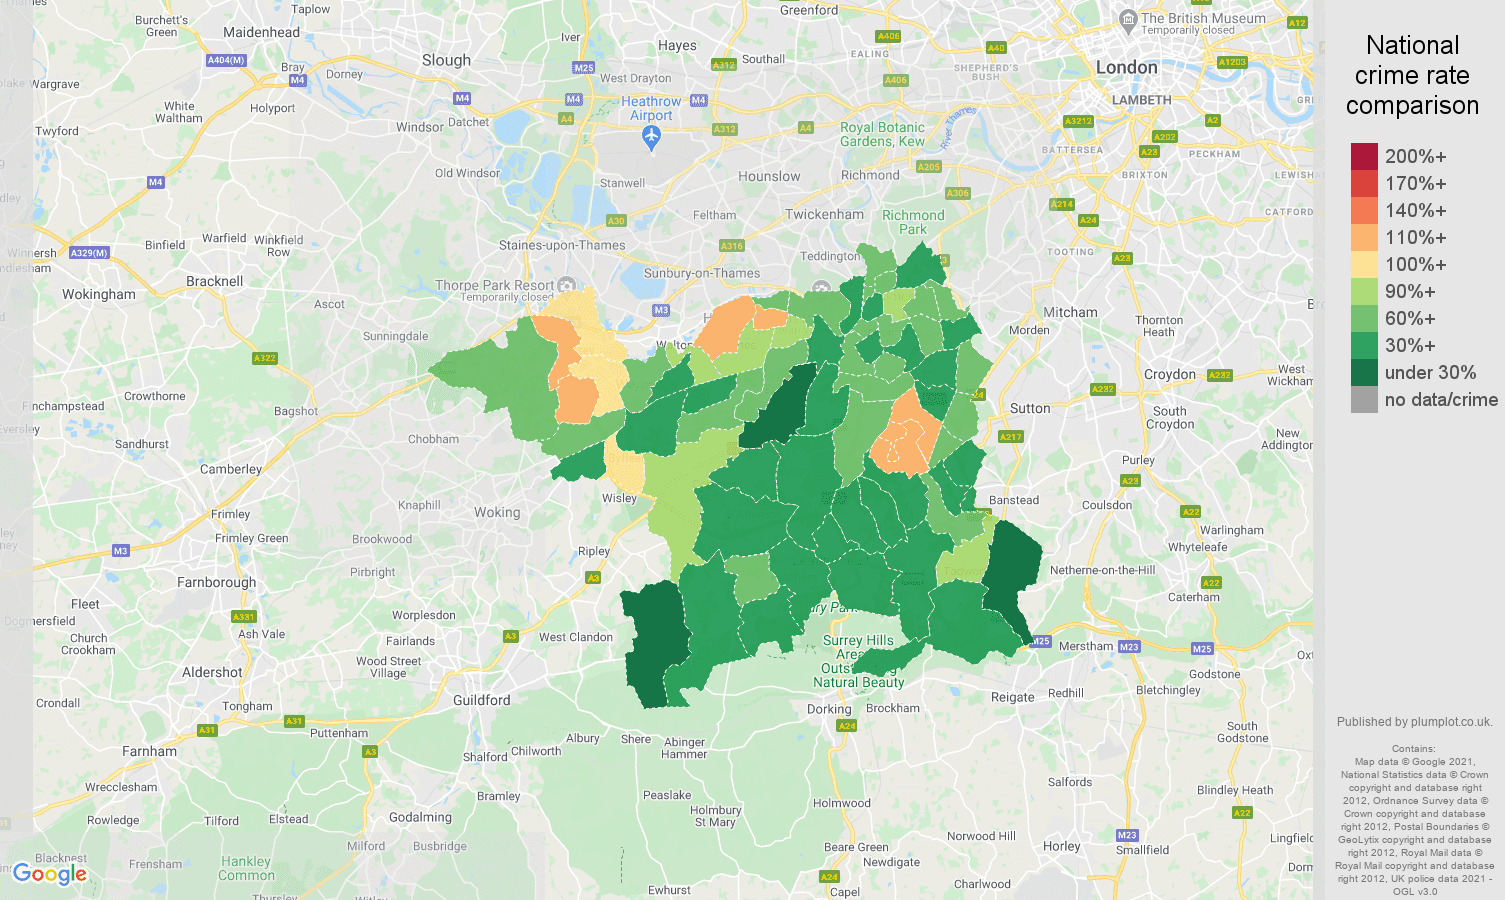 Kingston upon Thames violent crime rate comparison map